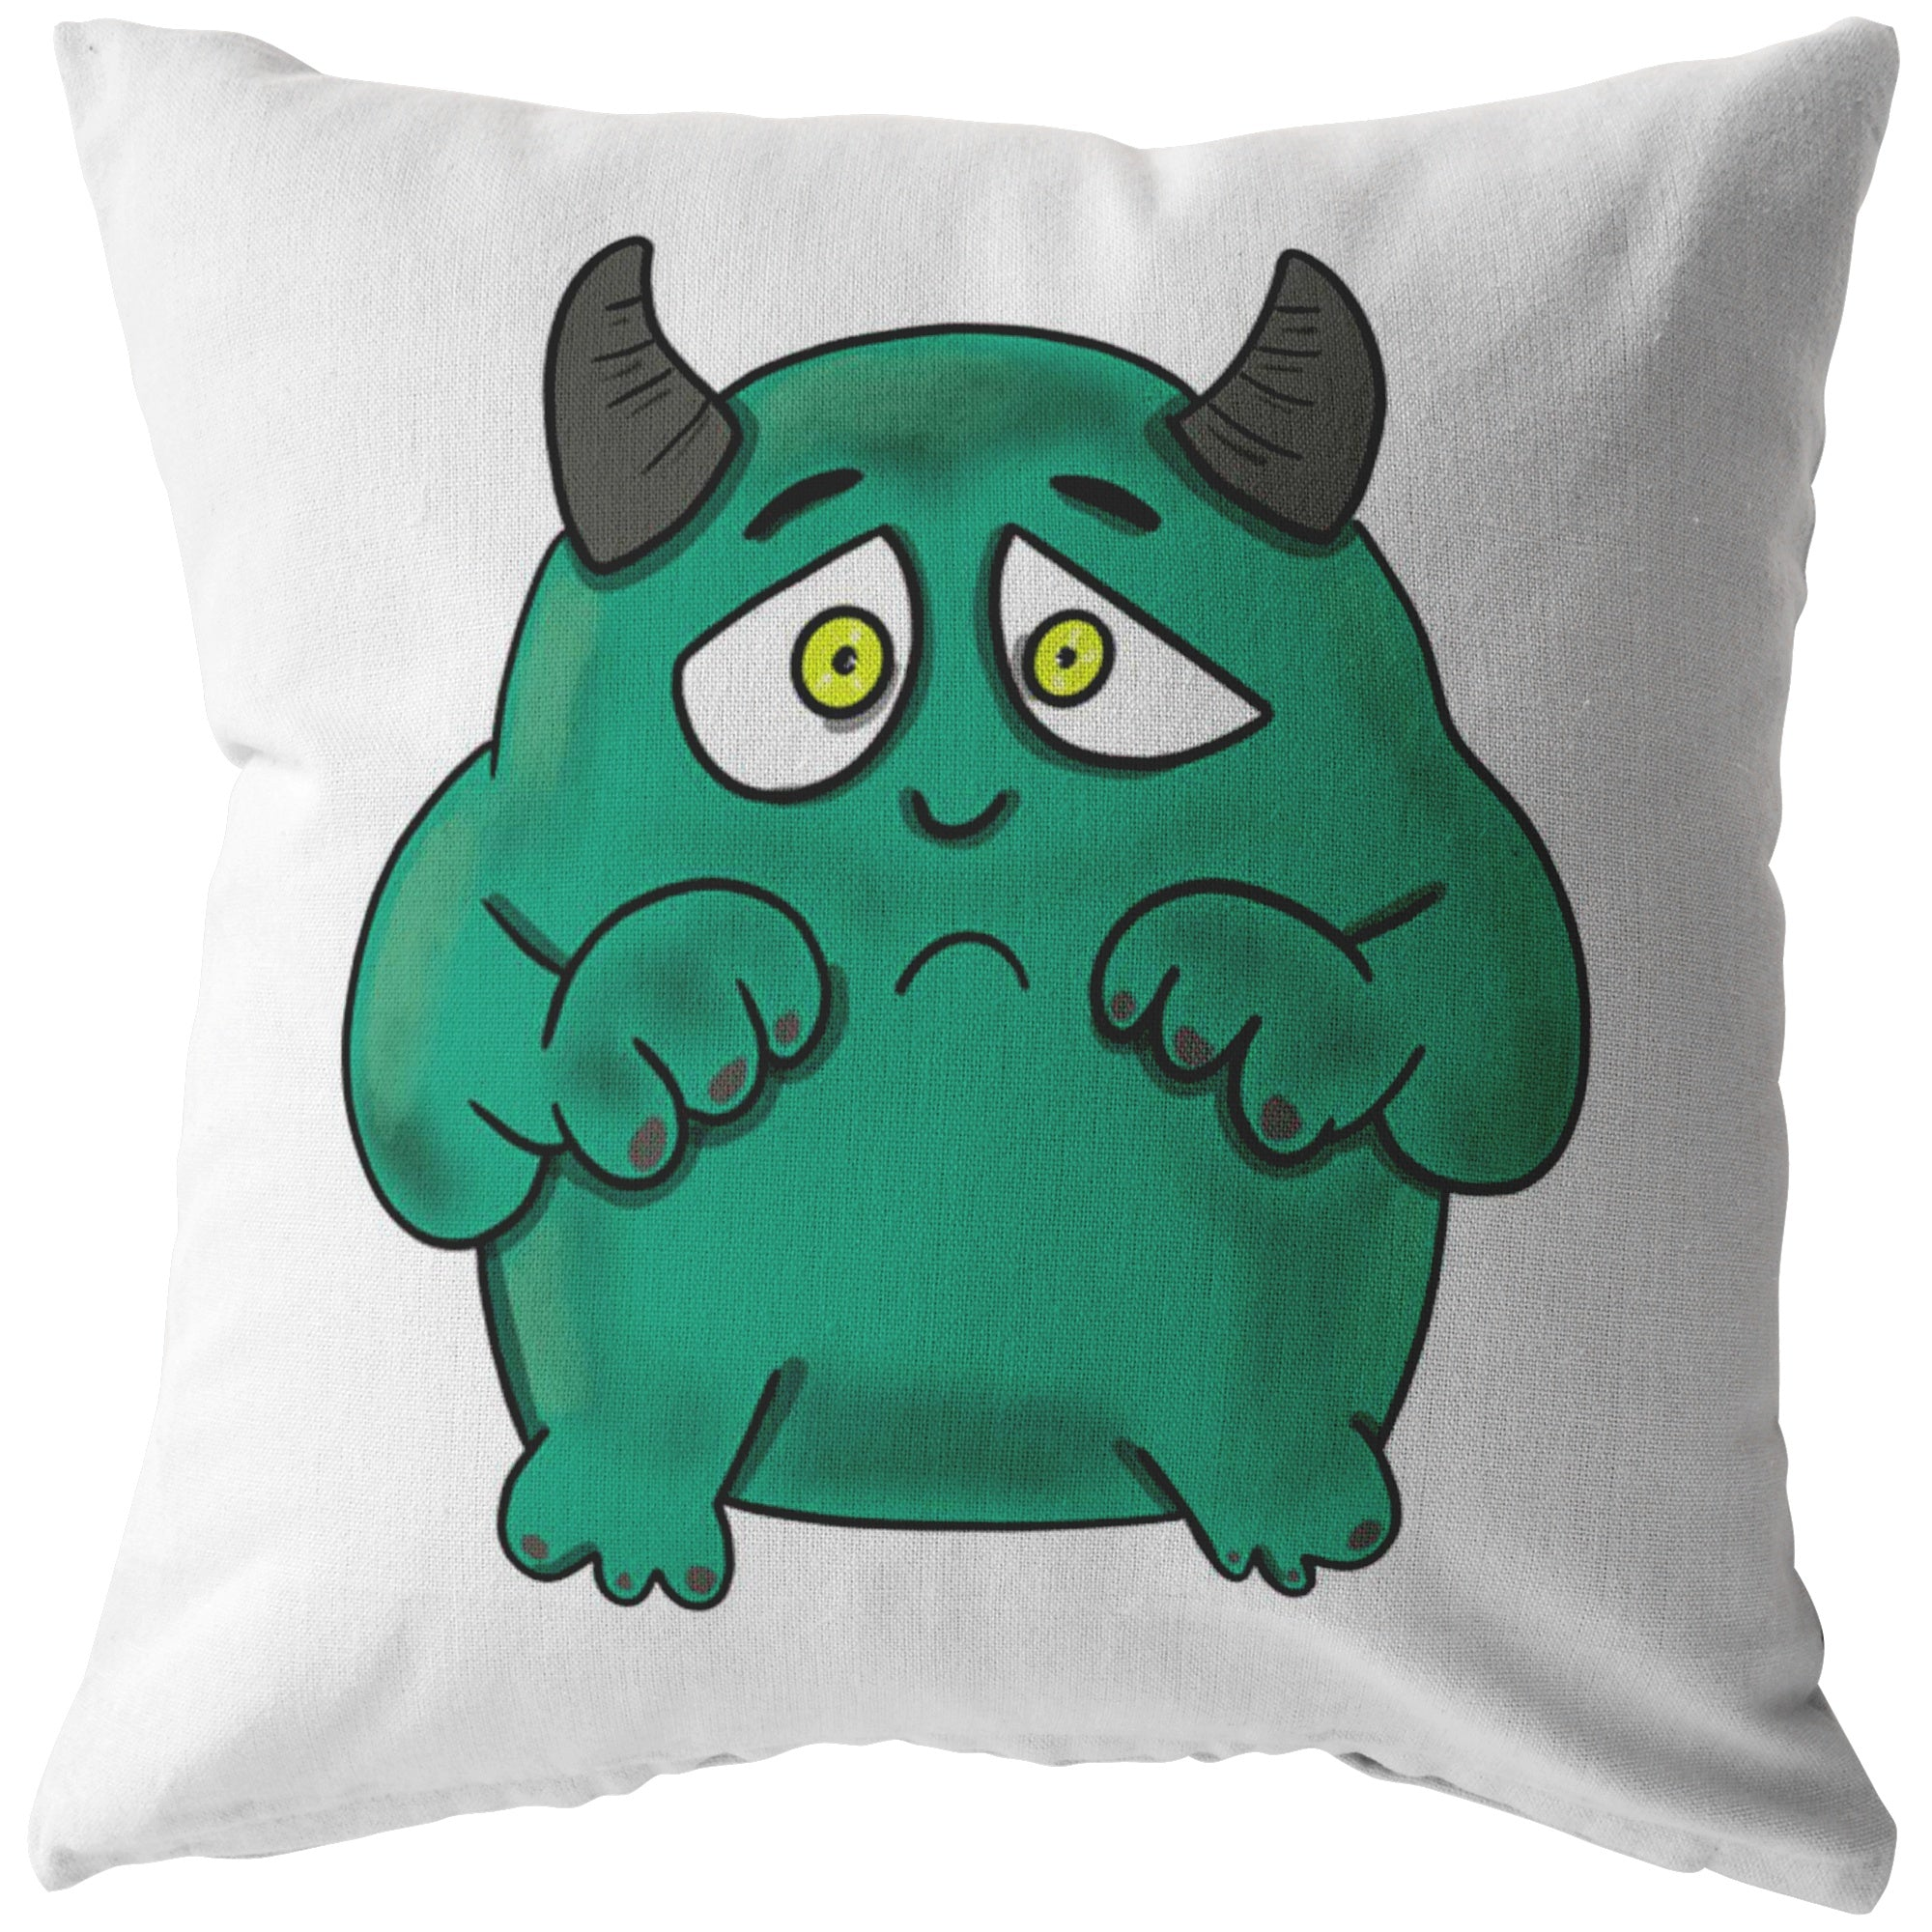 Interstitial Cystitis - IC Monster Pillow